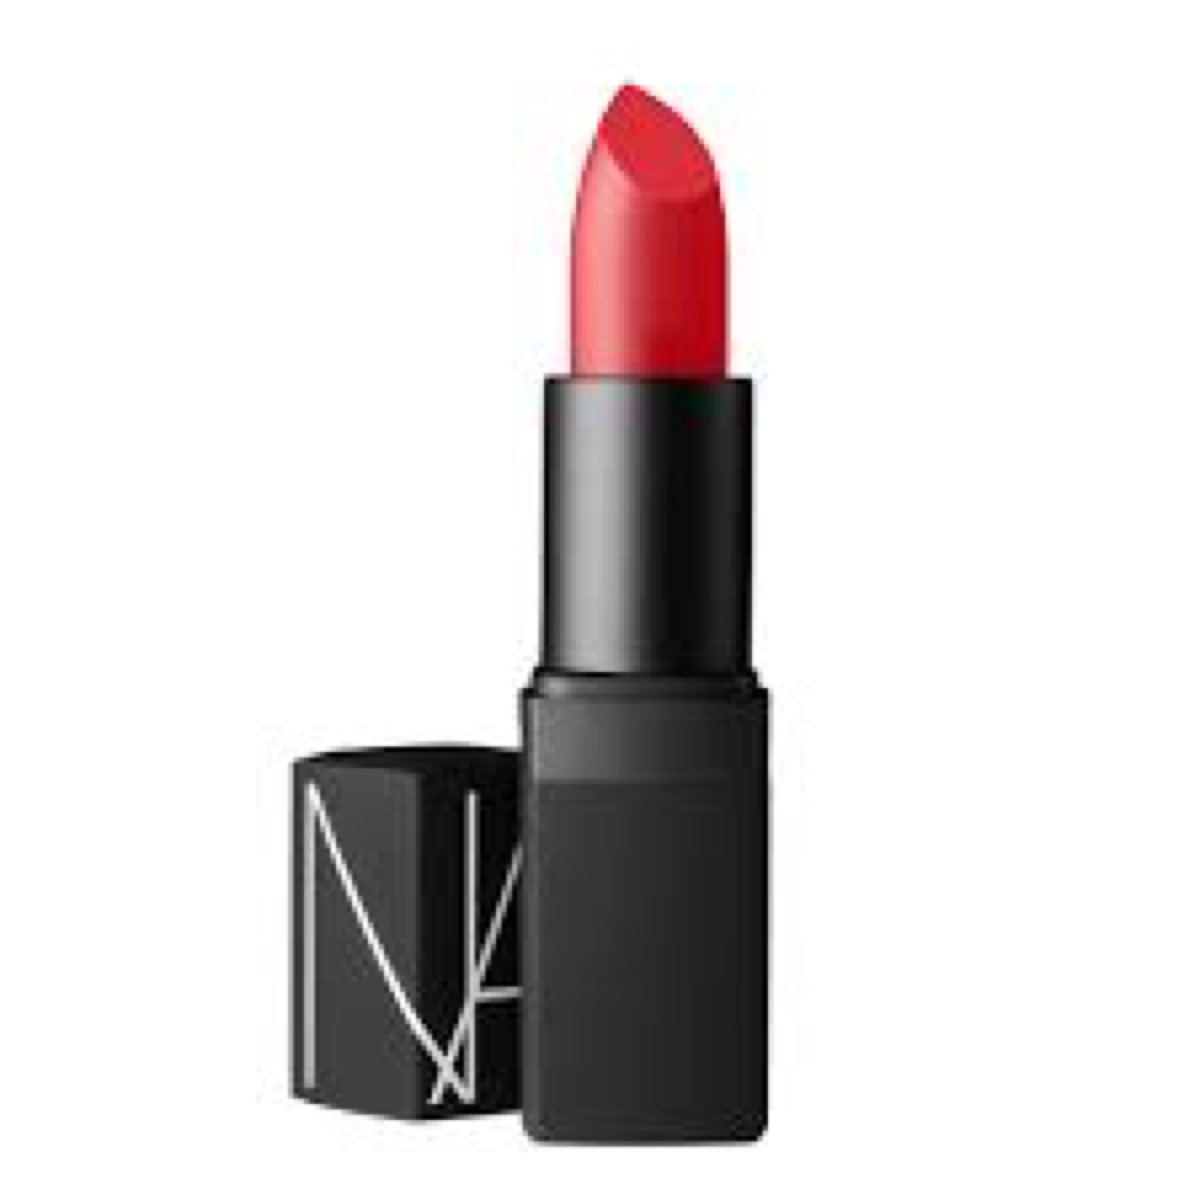 Poppy red NARS lipstick with cap off